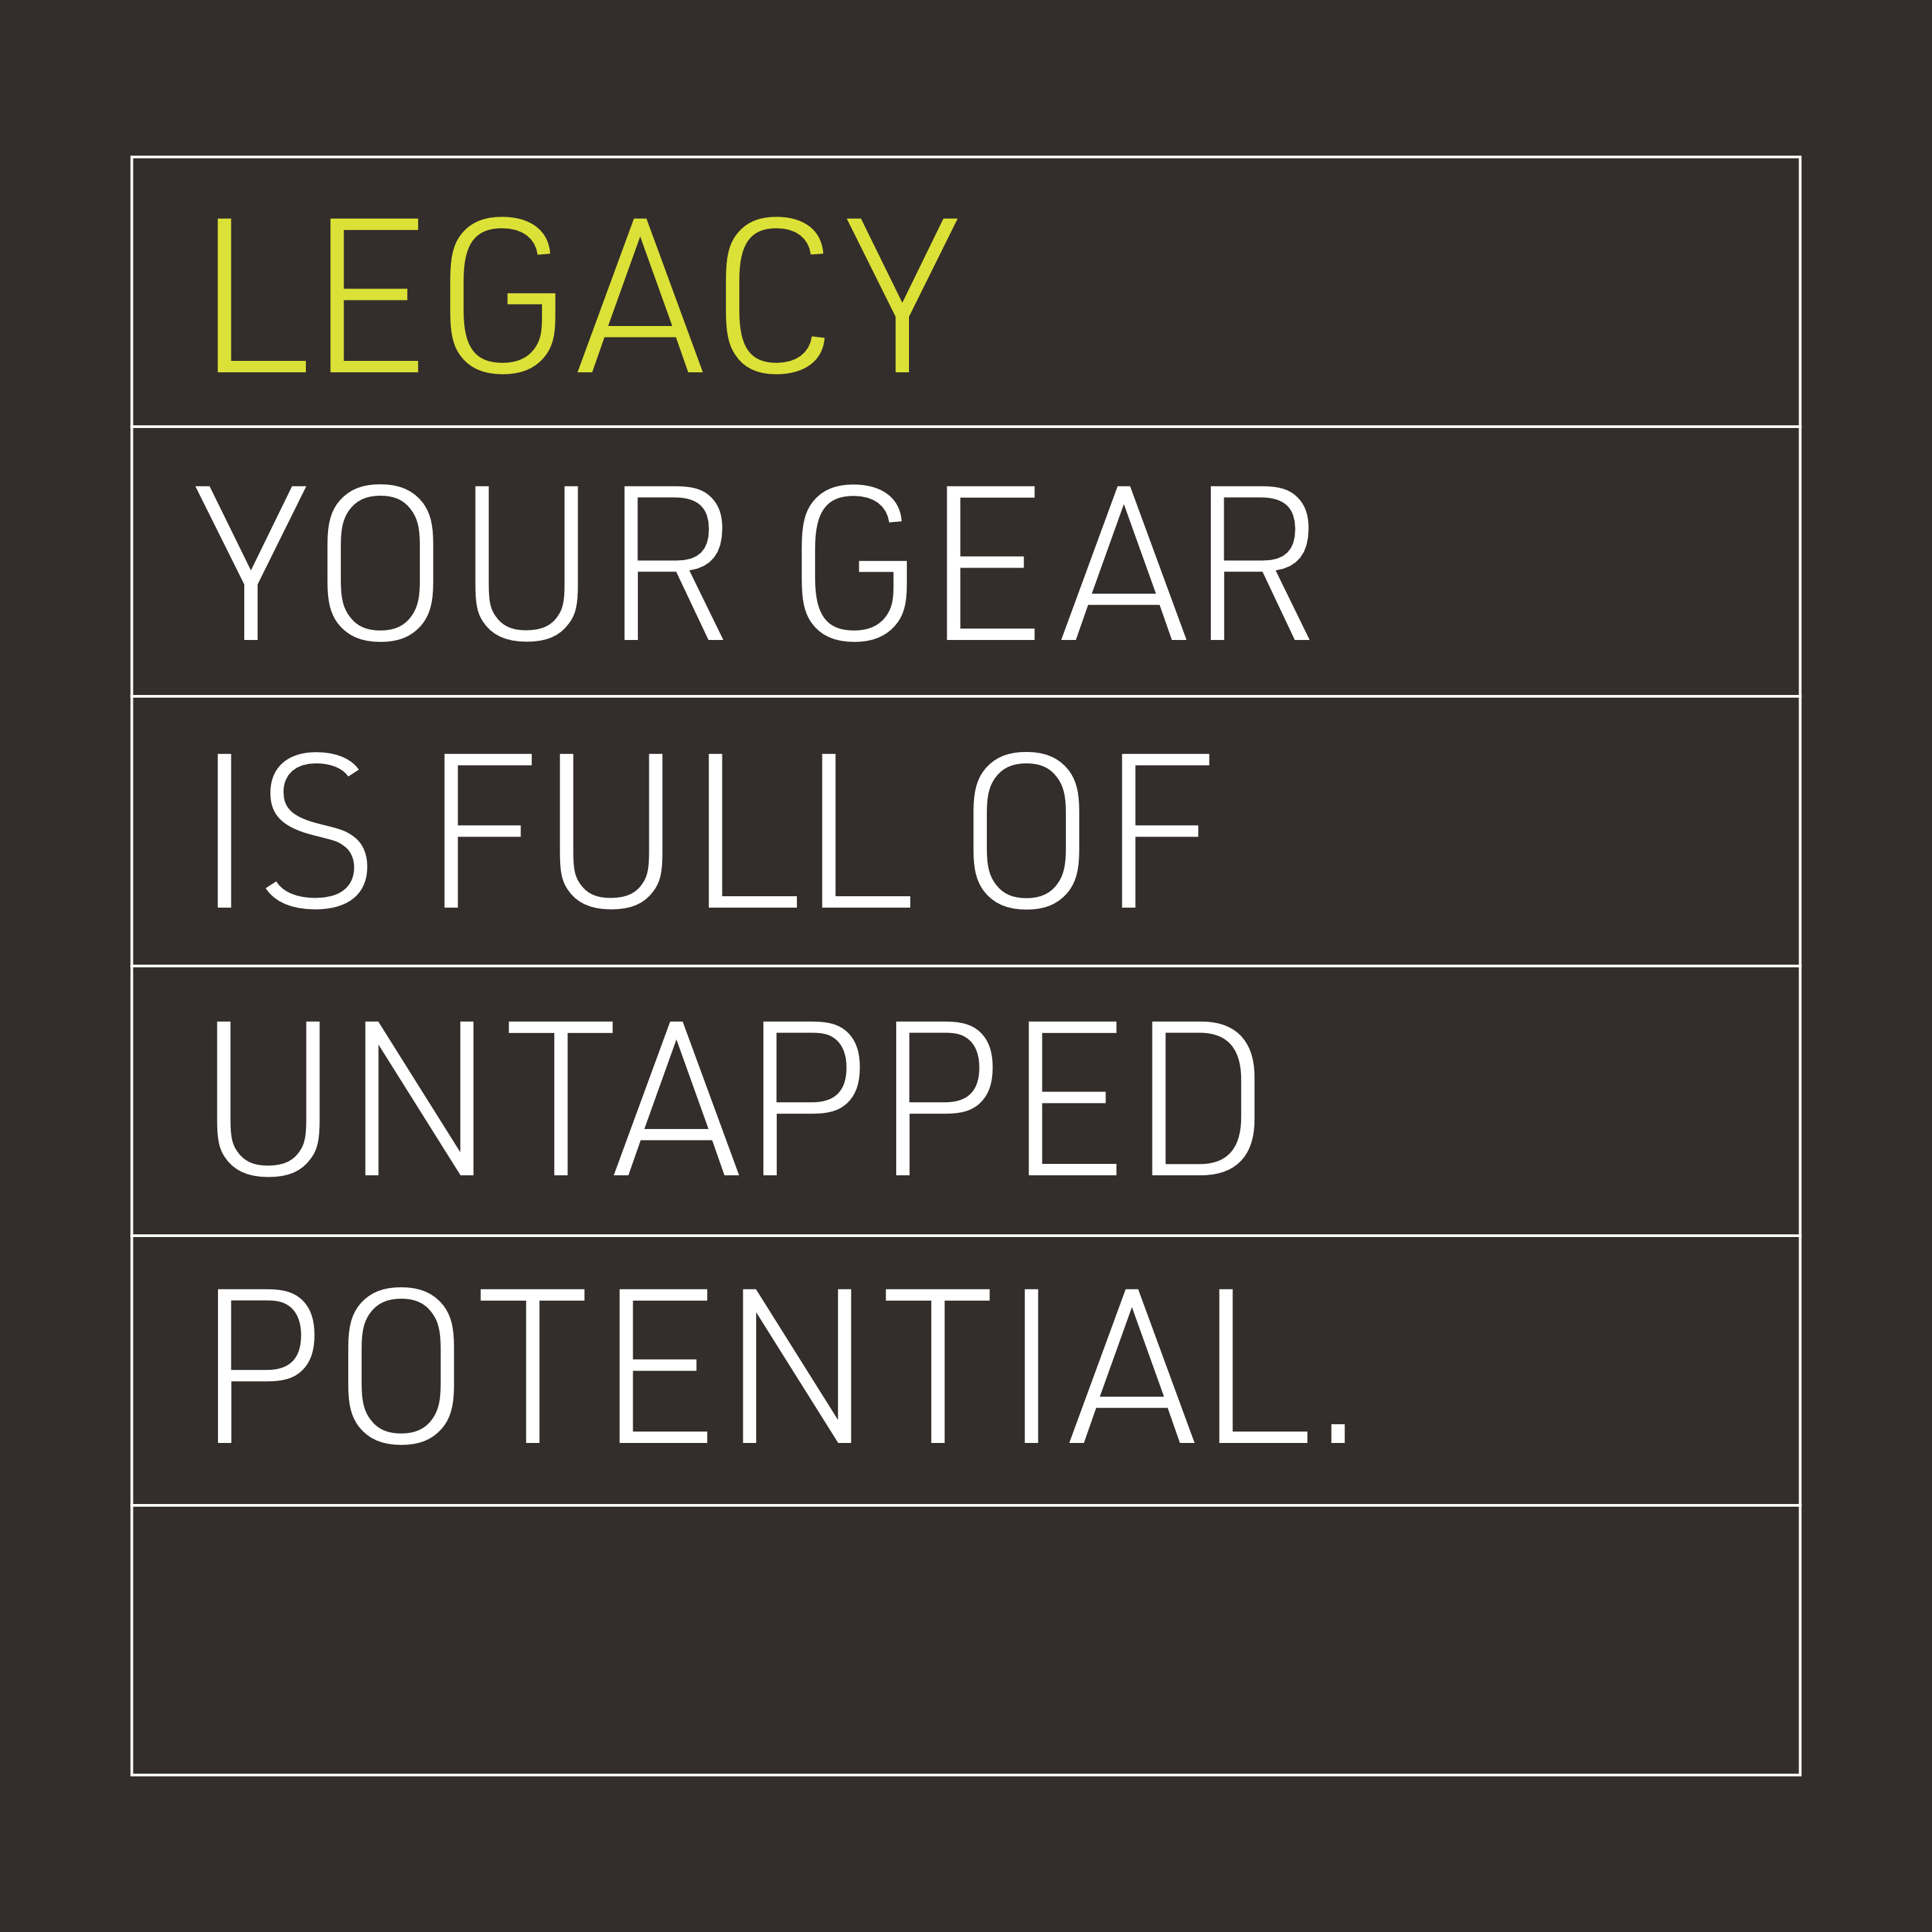 Legacy: Your gear is full of untapped potential